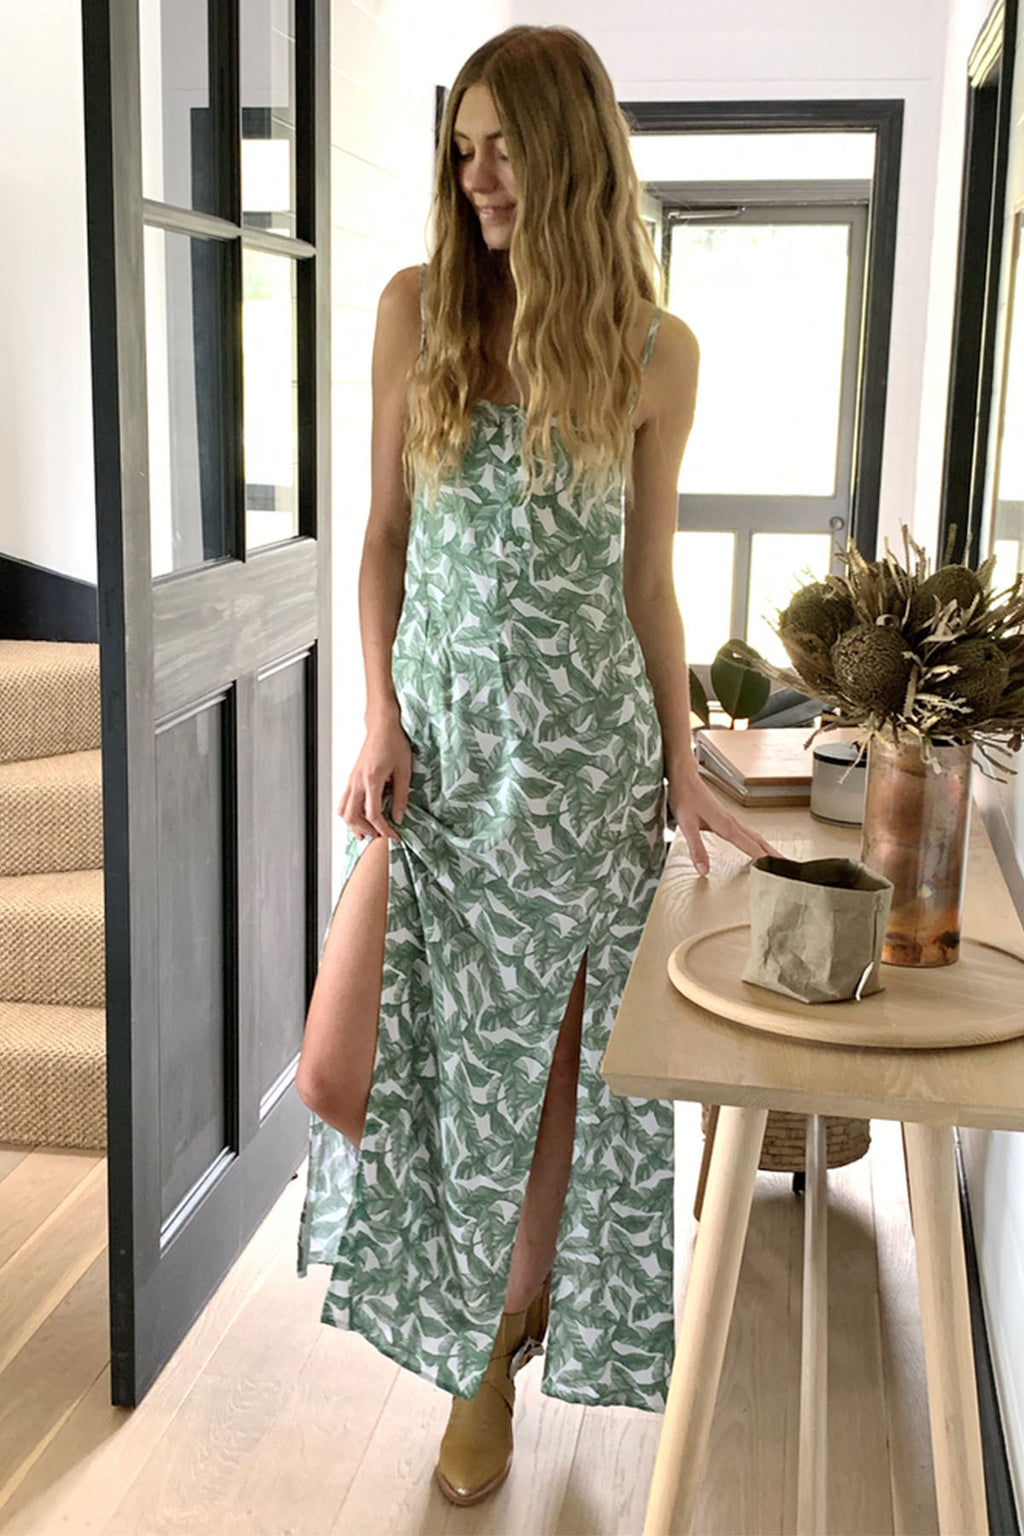 Summertime Strappy Maxi Dress - Green Leaf - The Bohemian Corner